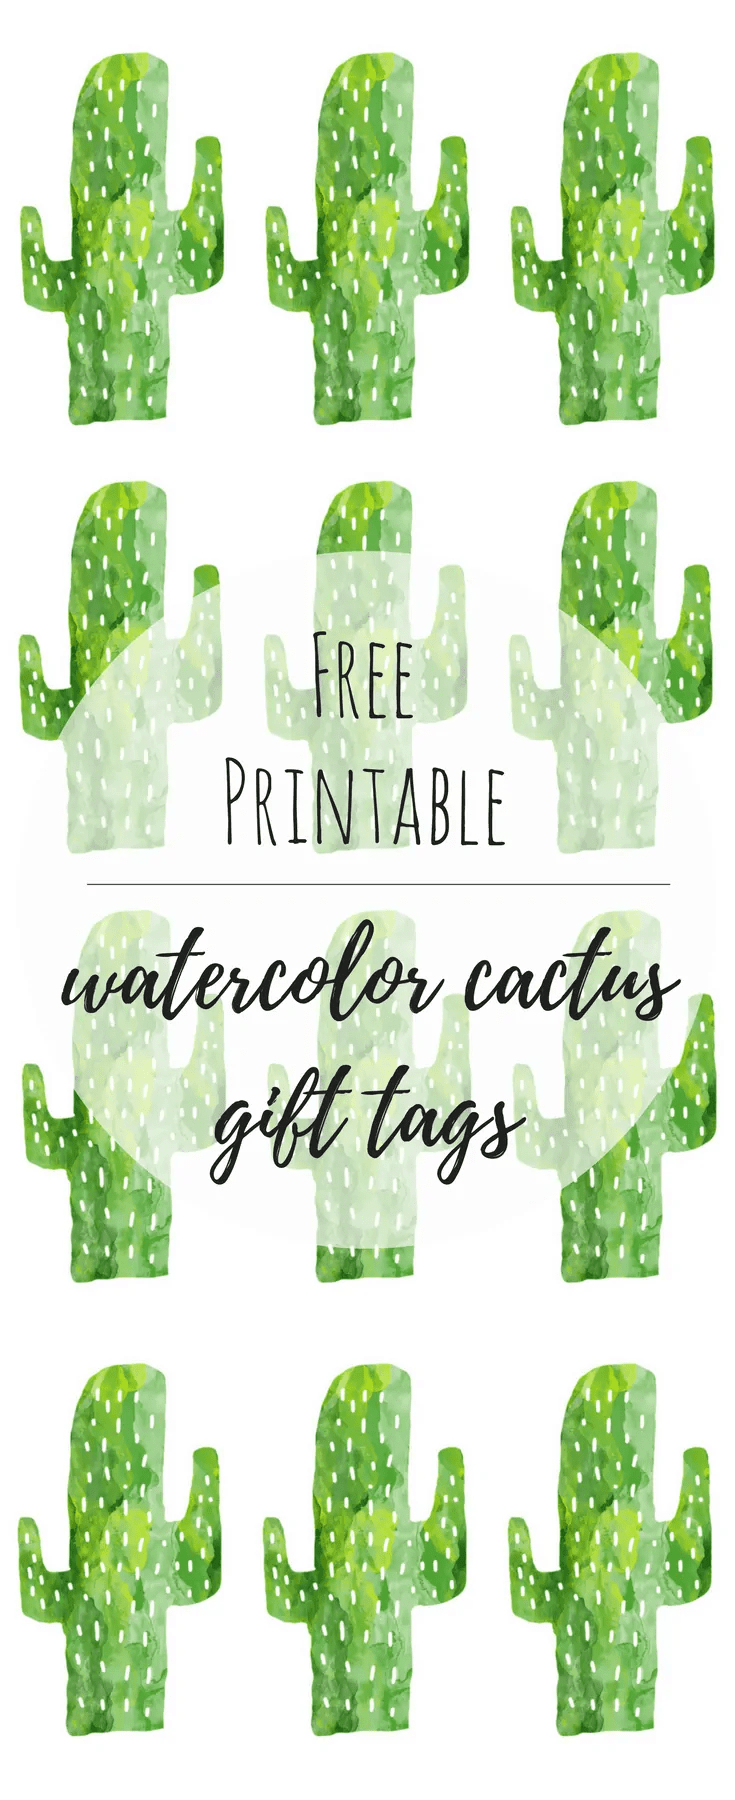 It's just an image of Juicy Free Cactus Printable